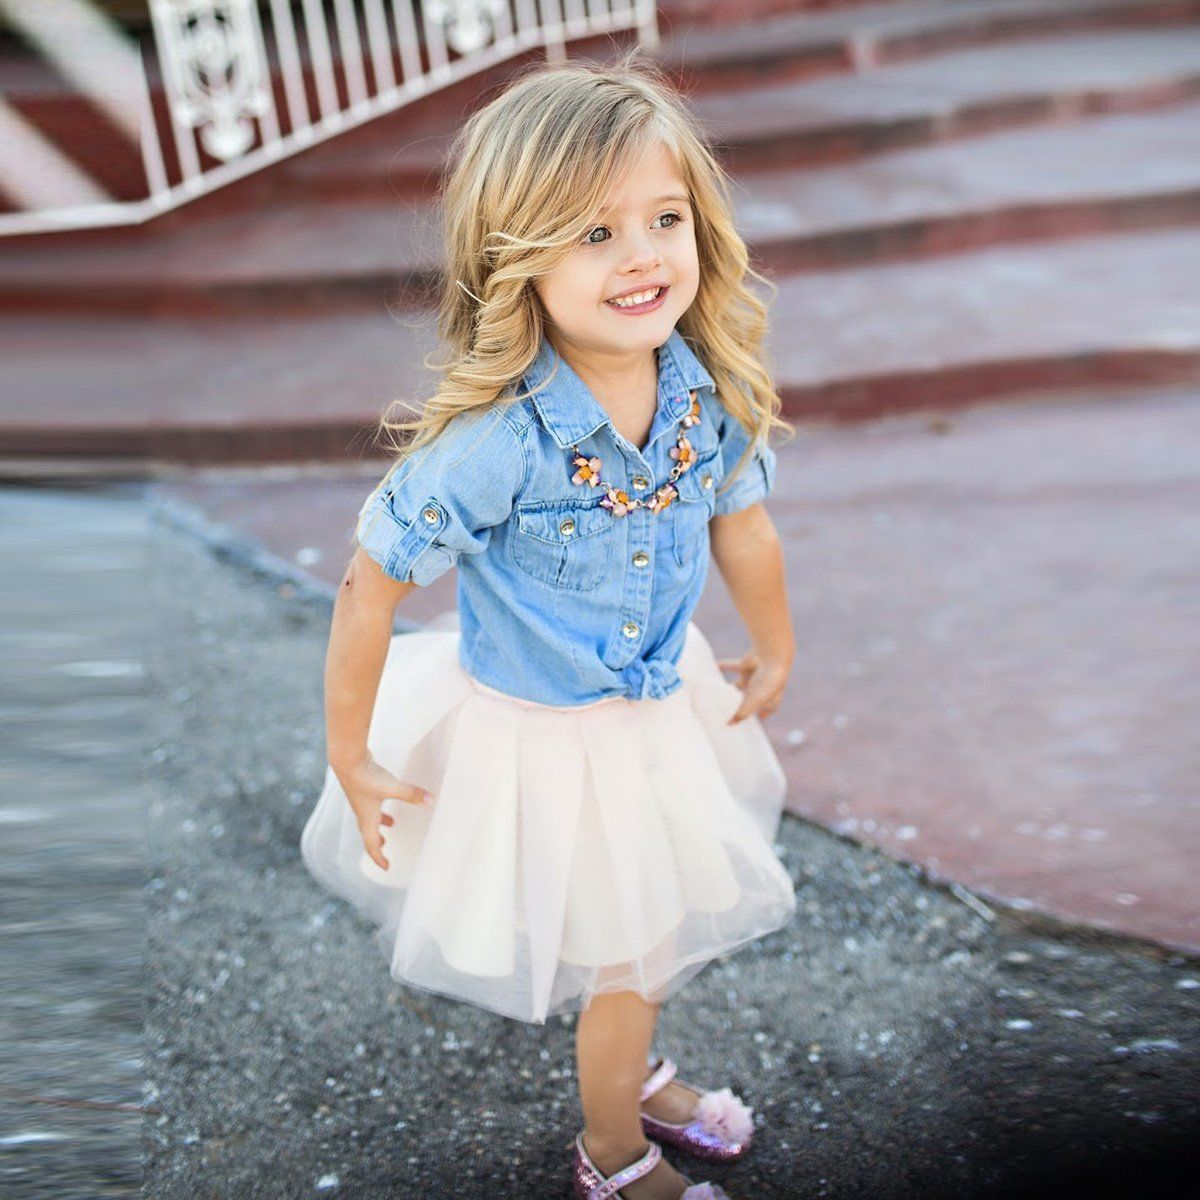 a3e745d9dc 2Pcs Toddler Kids Baby Girls Outfits Denim Shirt Tops+Tutu Skirt Dress Sets